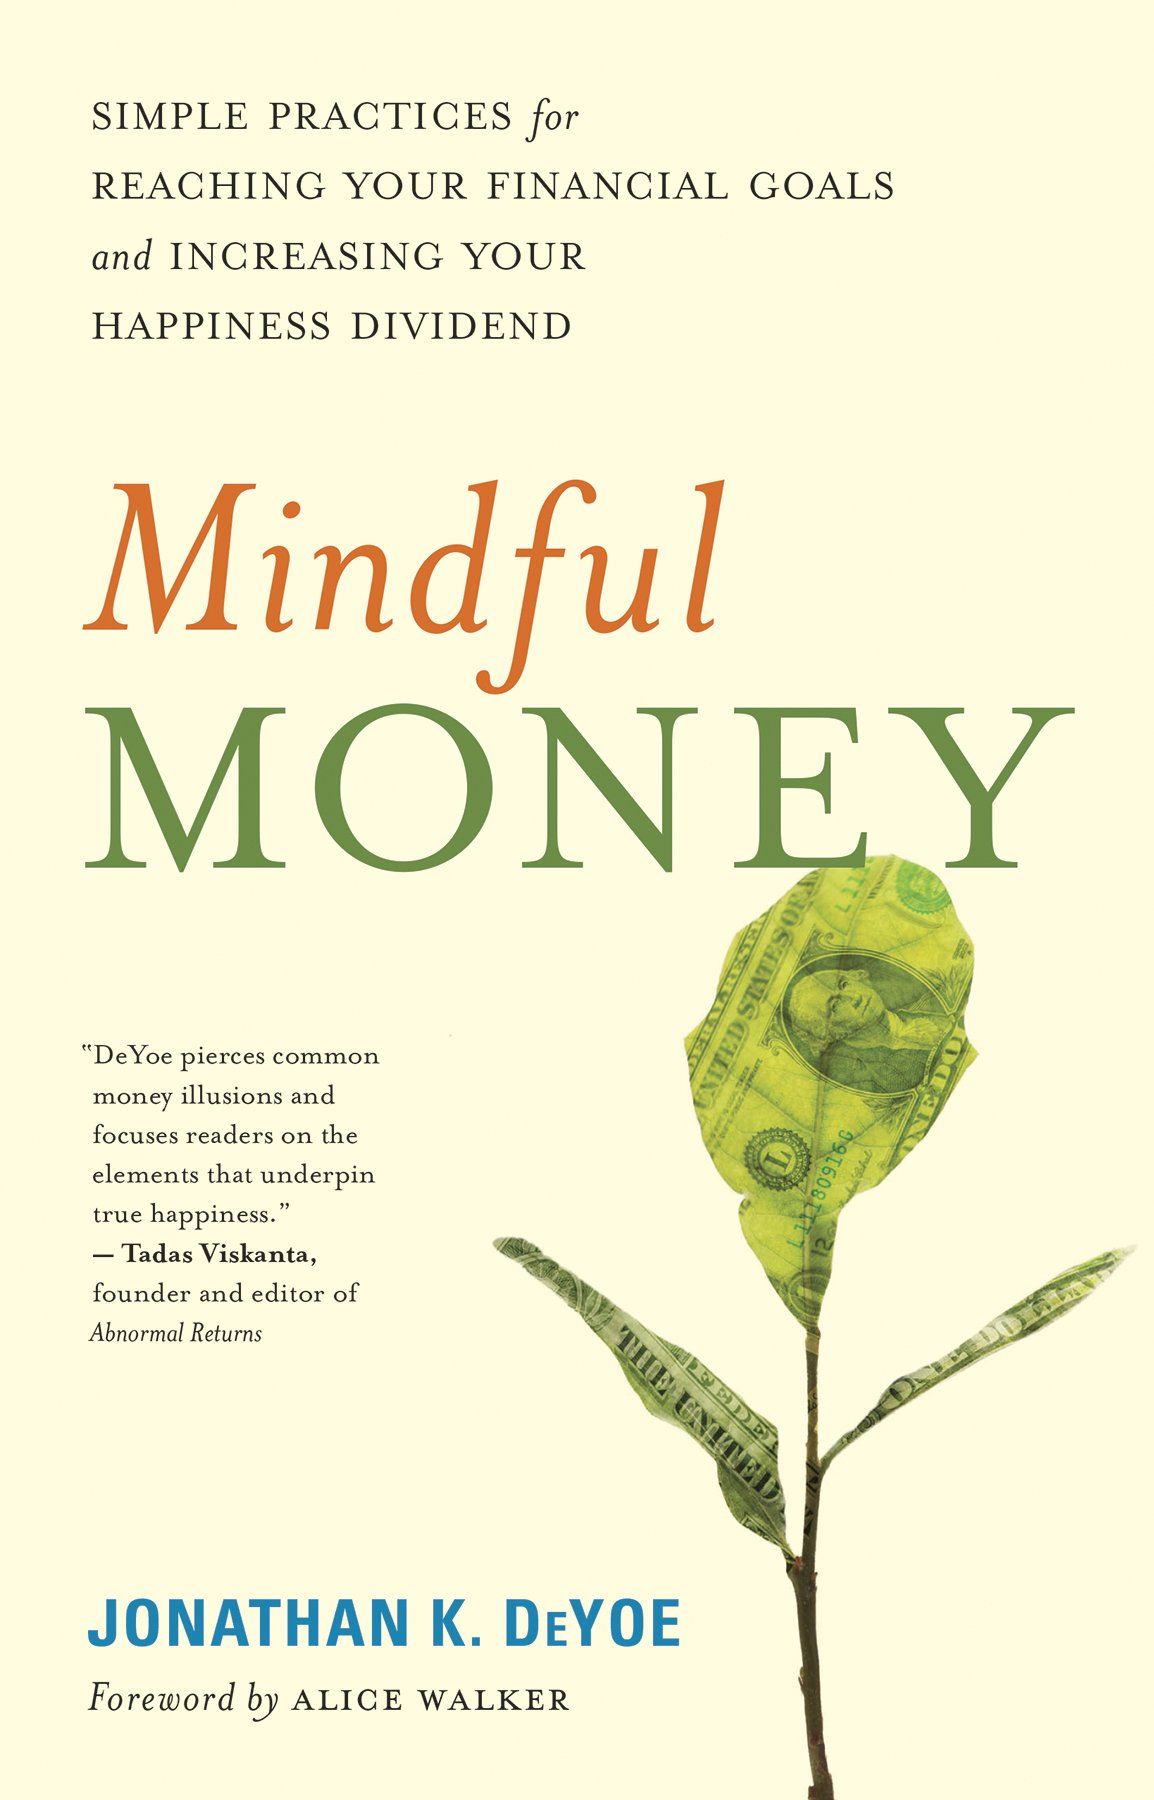 Mindful money simple practices for reaching your financial goals mindful money simple practices for reaching your financial goals and increasing your happiness dividend jonathan k deyoe alice walker 9781608684366 malvernweather Images